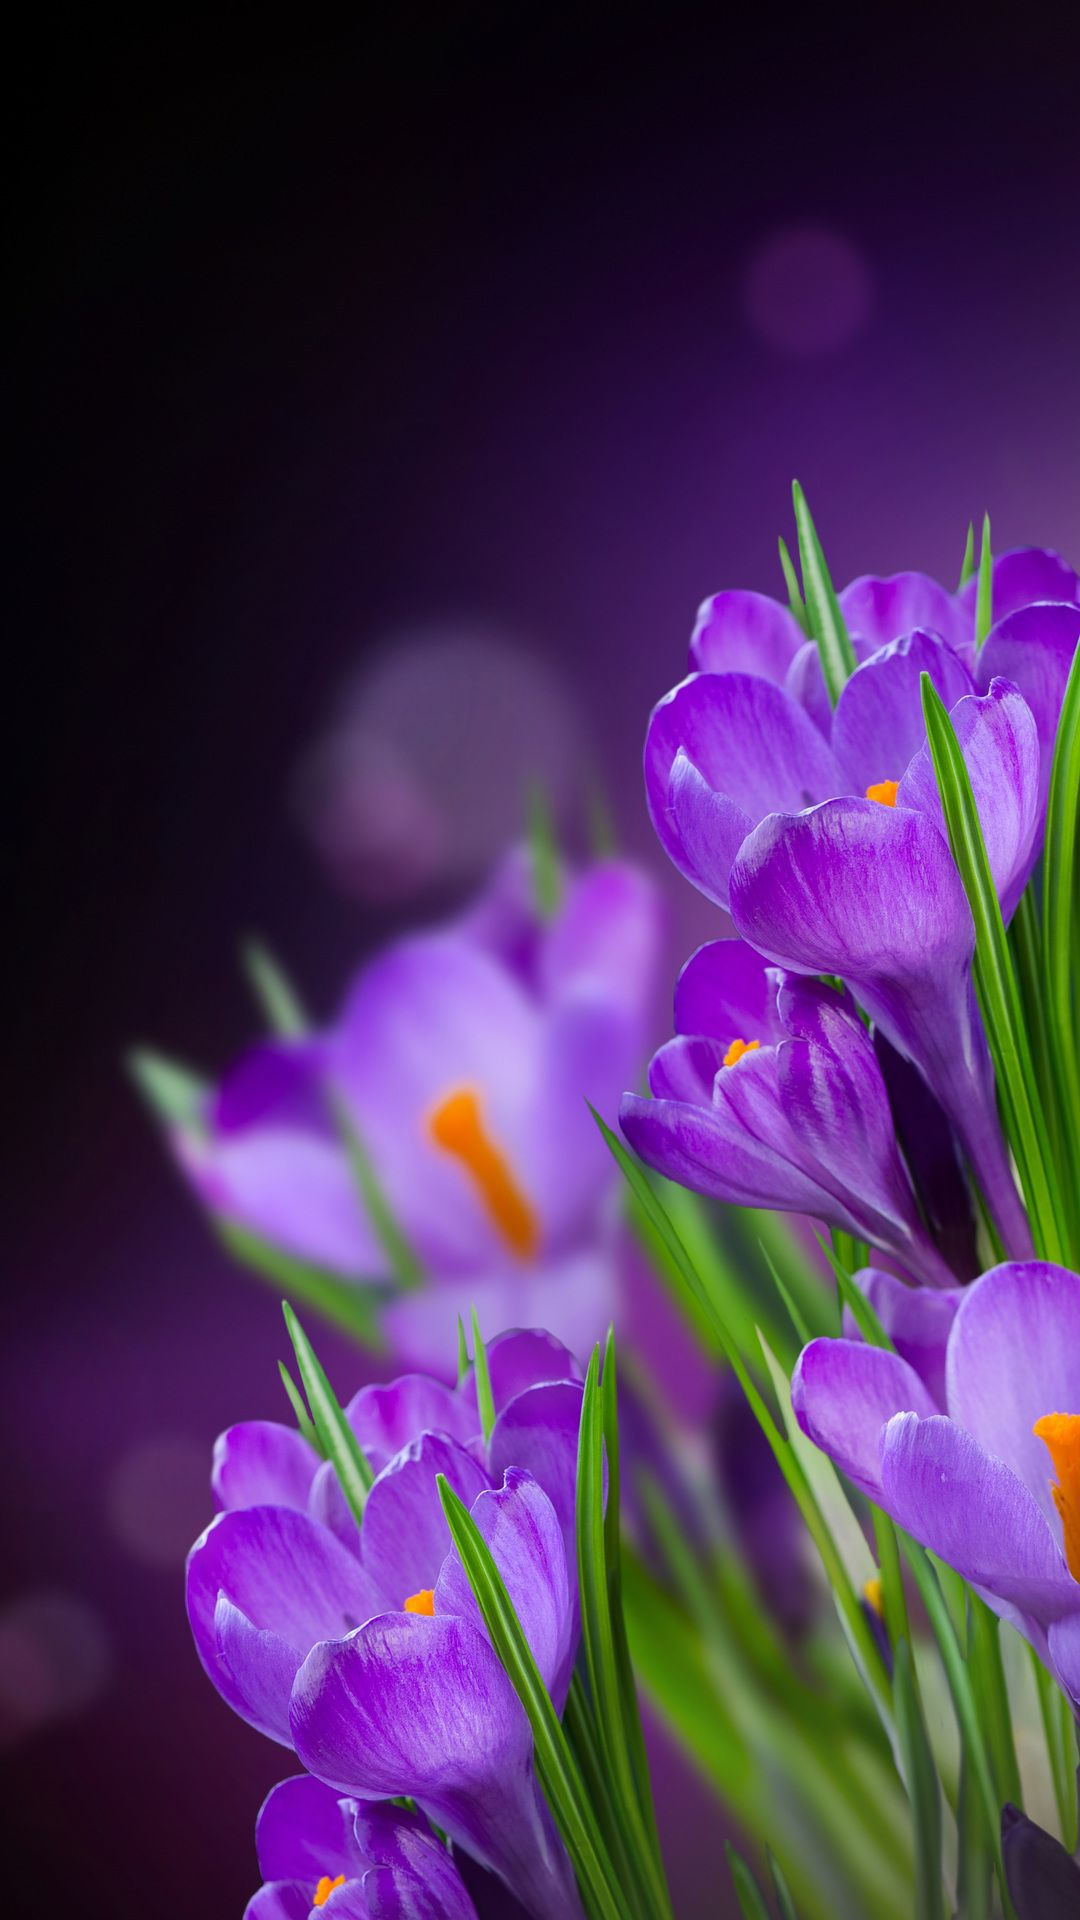 The Wallpapers Of Spring Crocuses